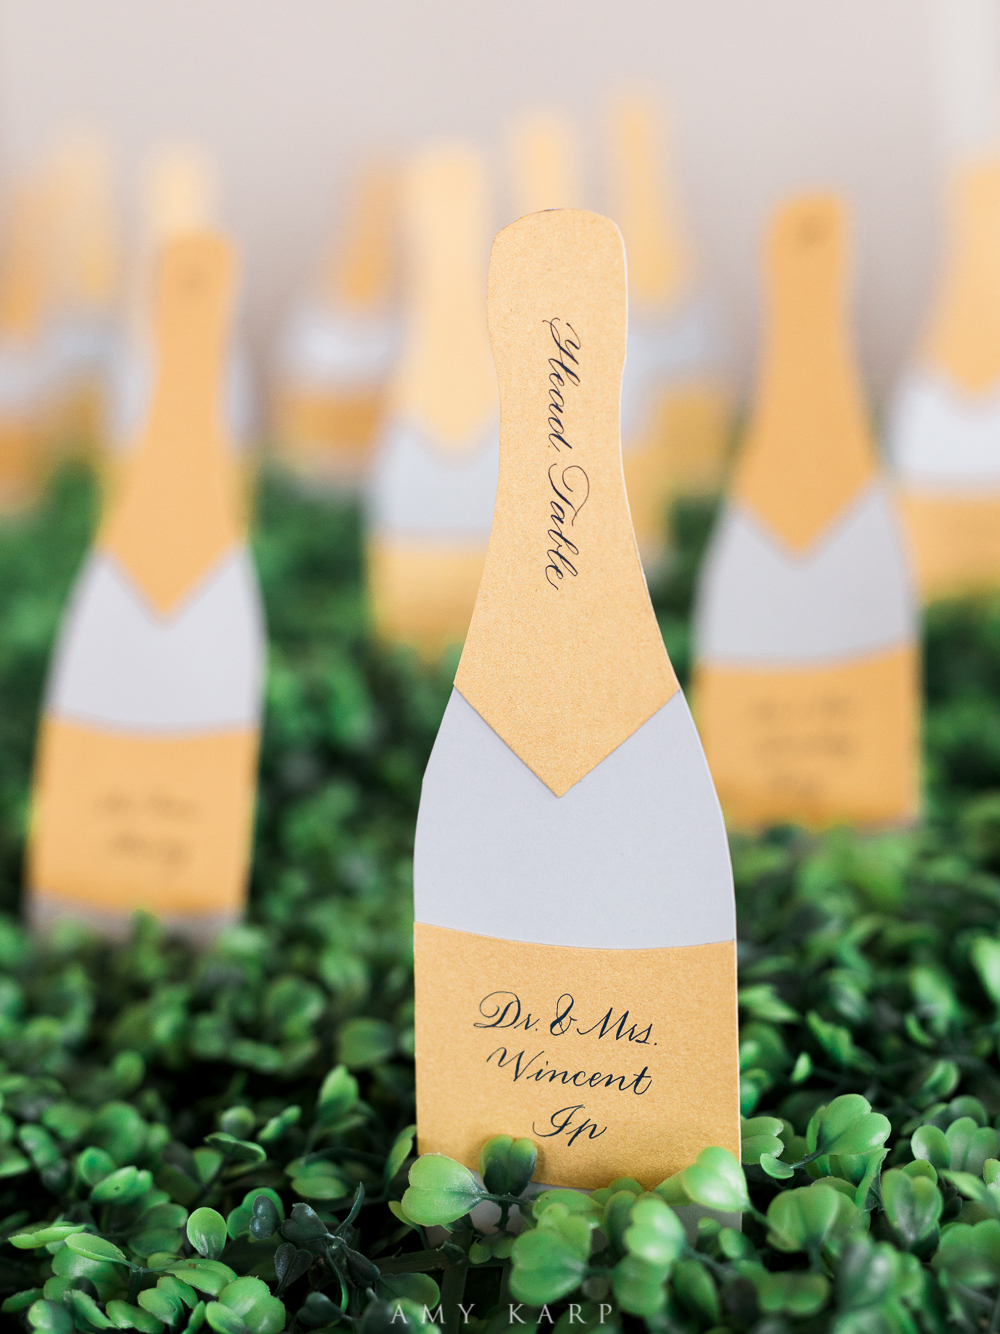 Use Champagne-Inspired Décor